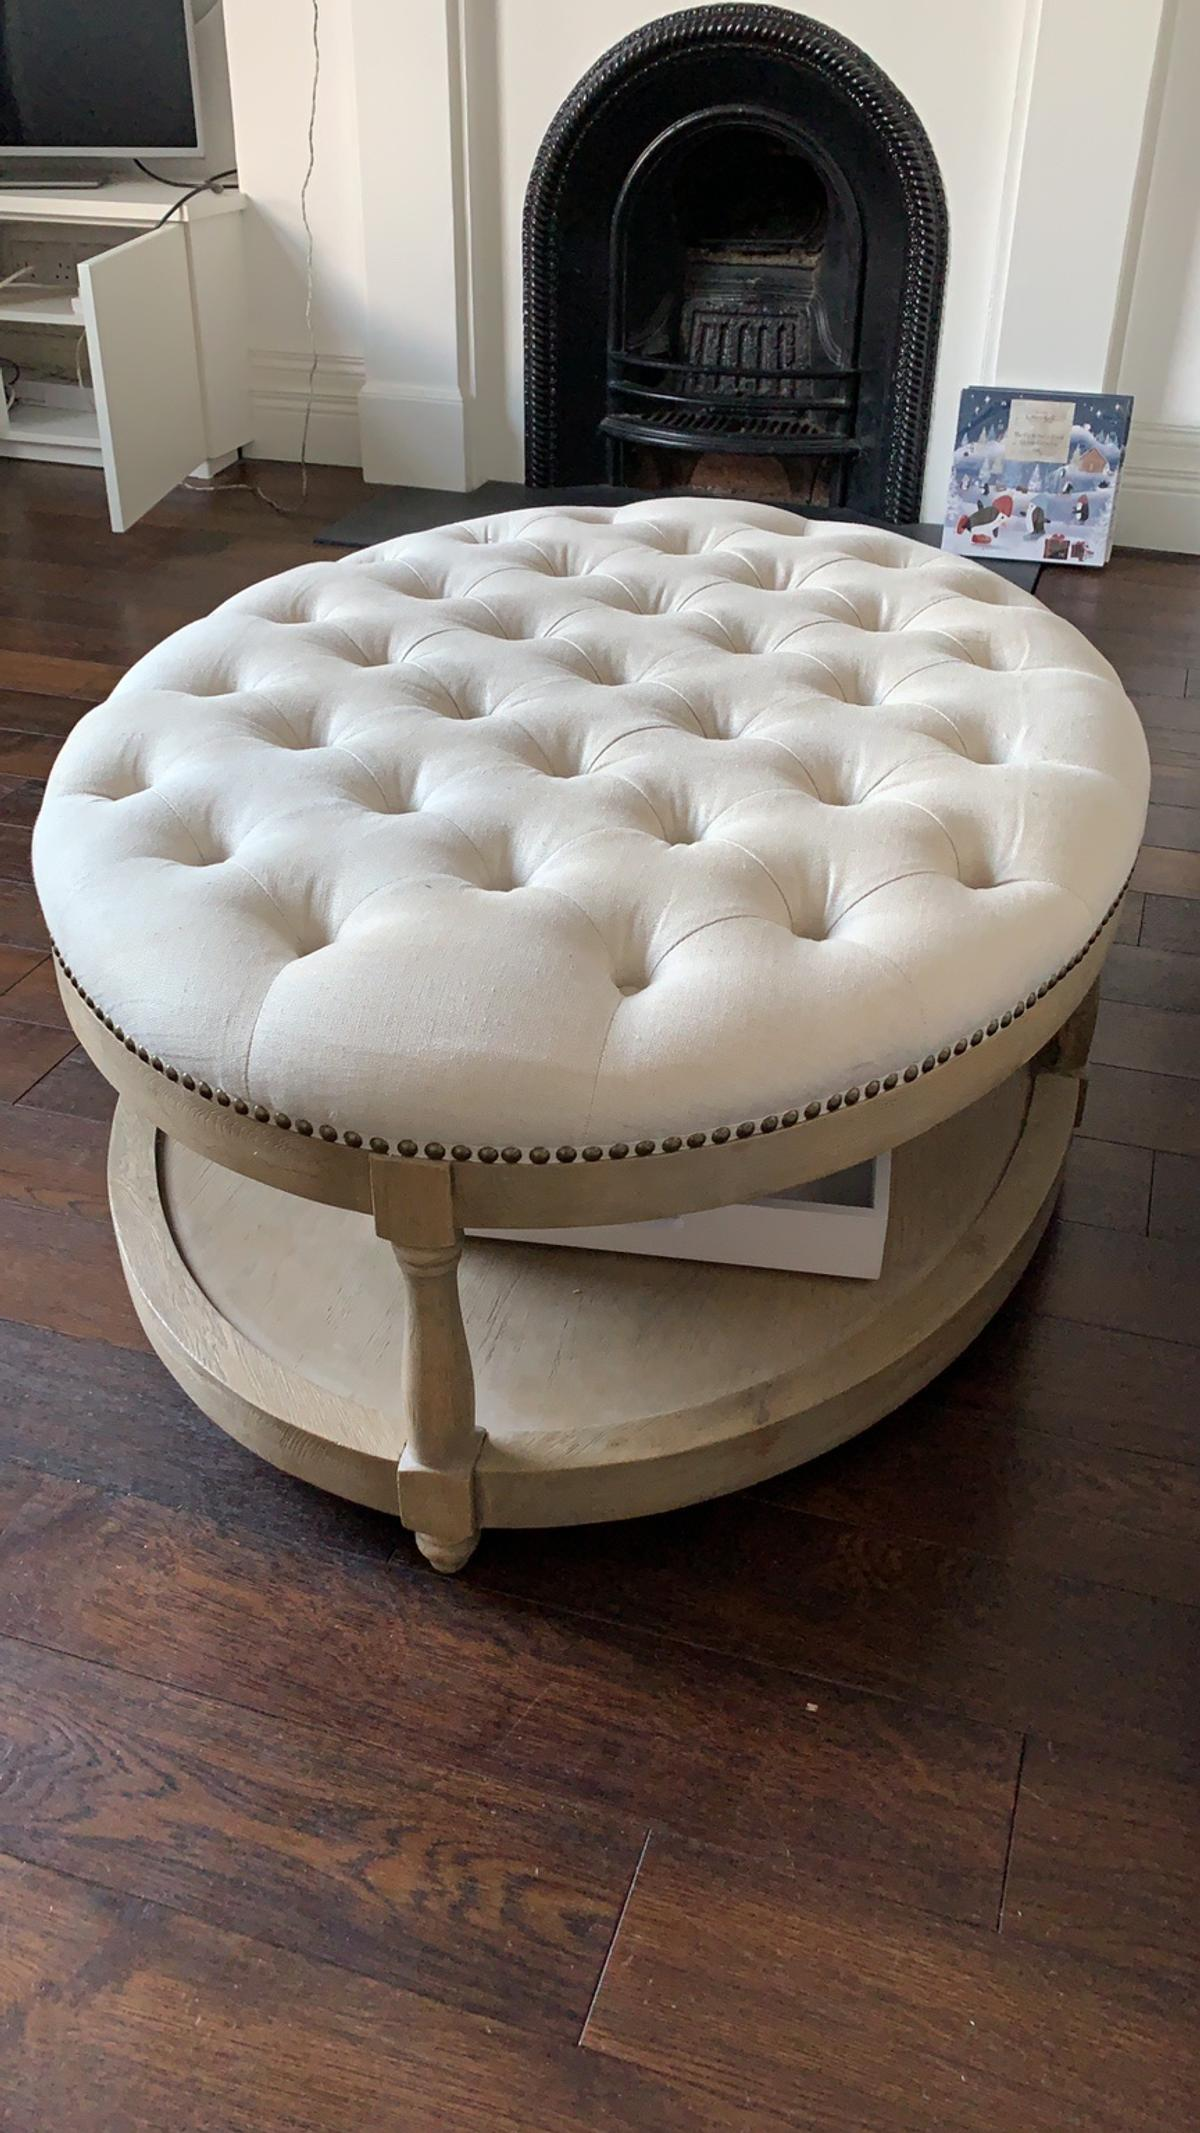 Ottoman Second Hand In Nw3 Camden For 400 00 For Sale Shpock